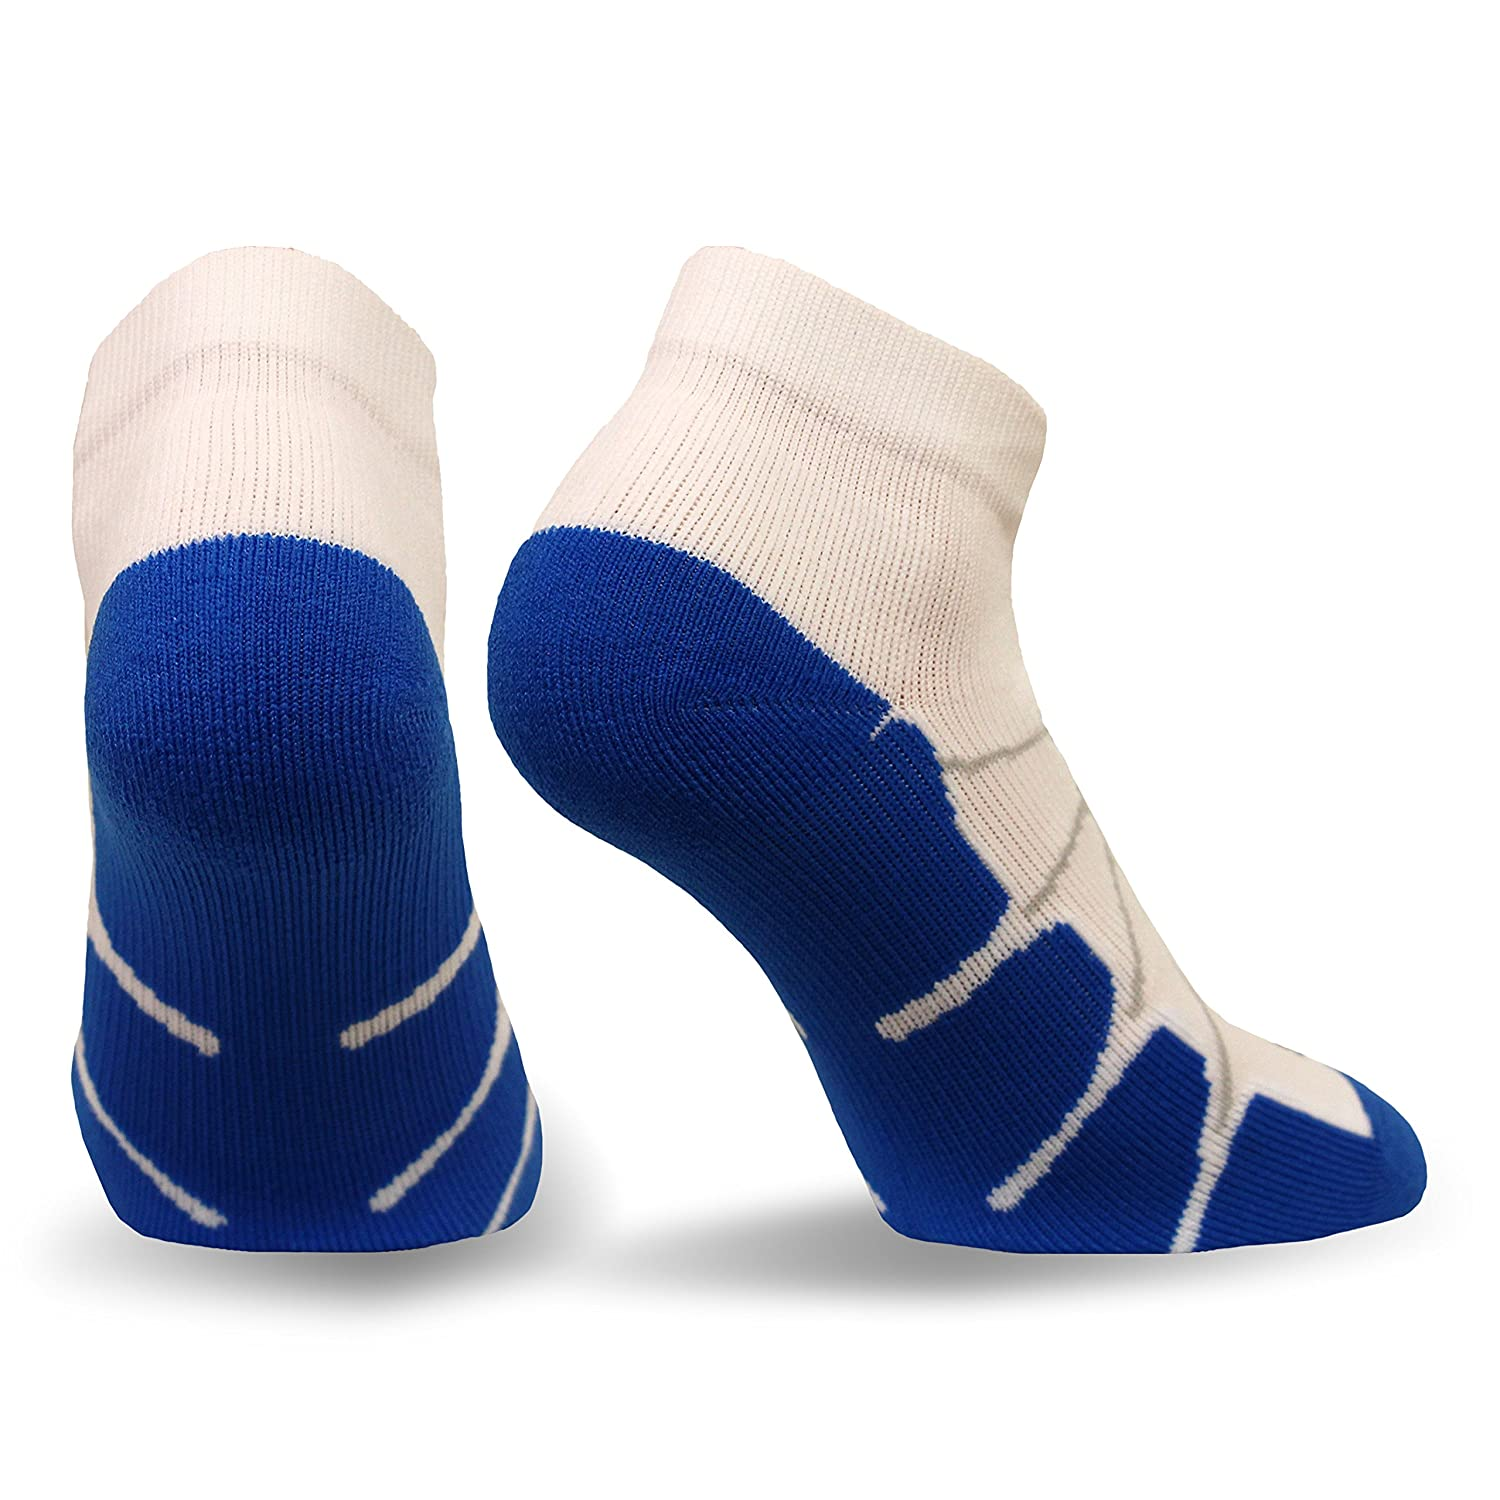 Sox Arch Compression Plantar Fasciitus Support Zone Silver Drystat Polypro Ped Socks SOXA2 SS4011-18-p